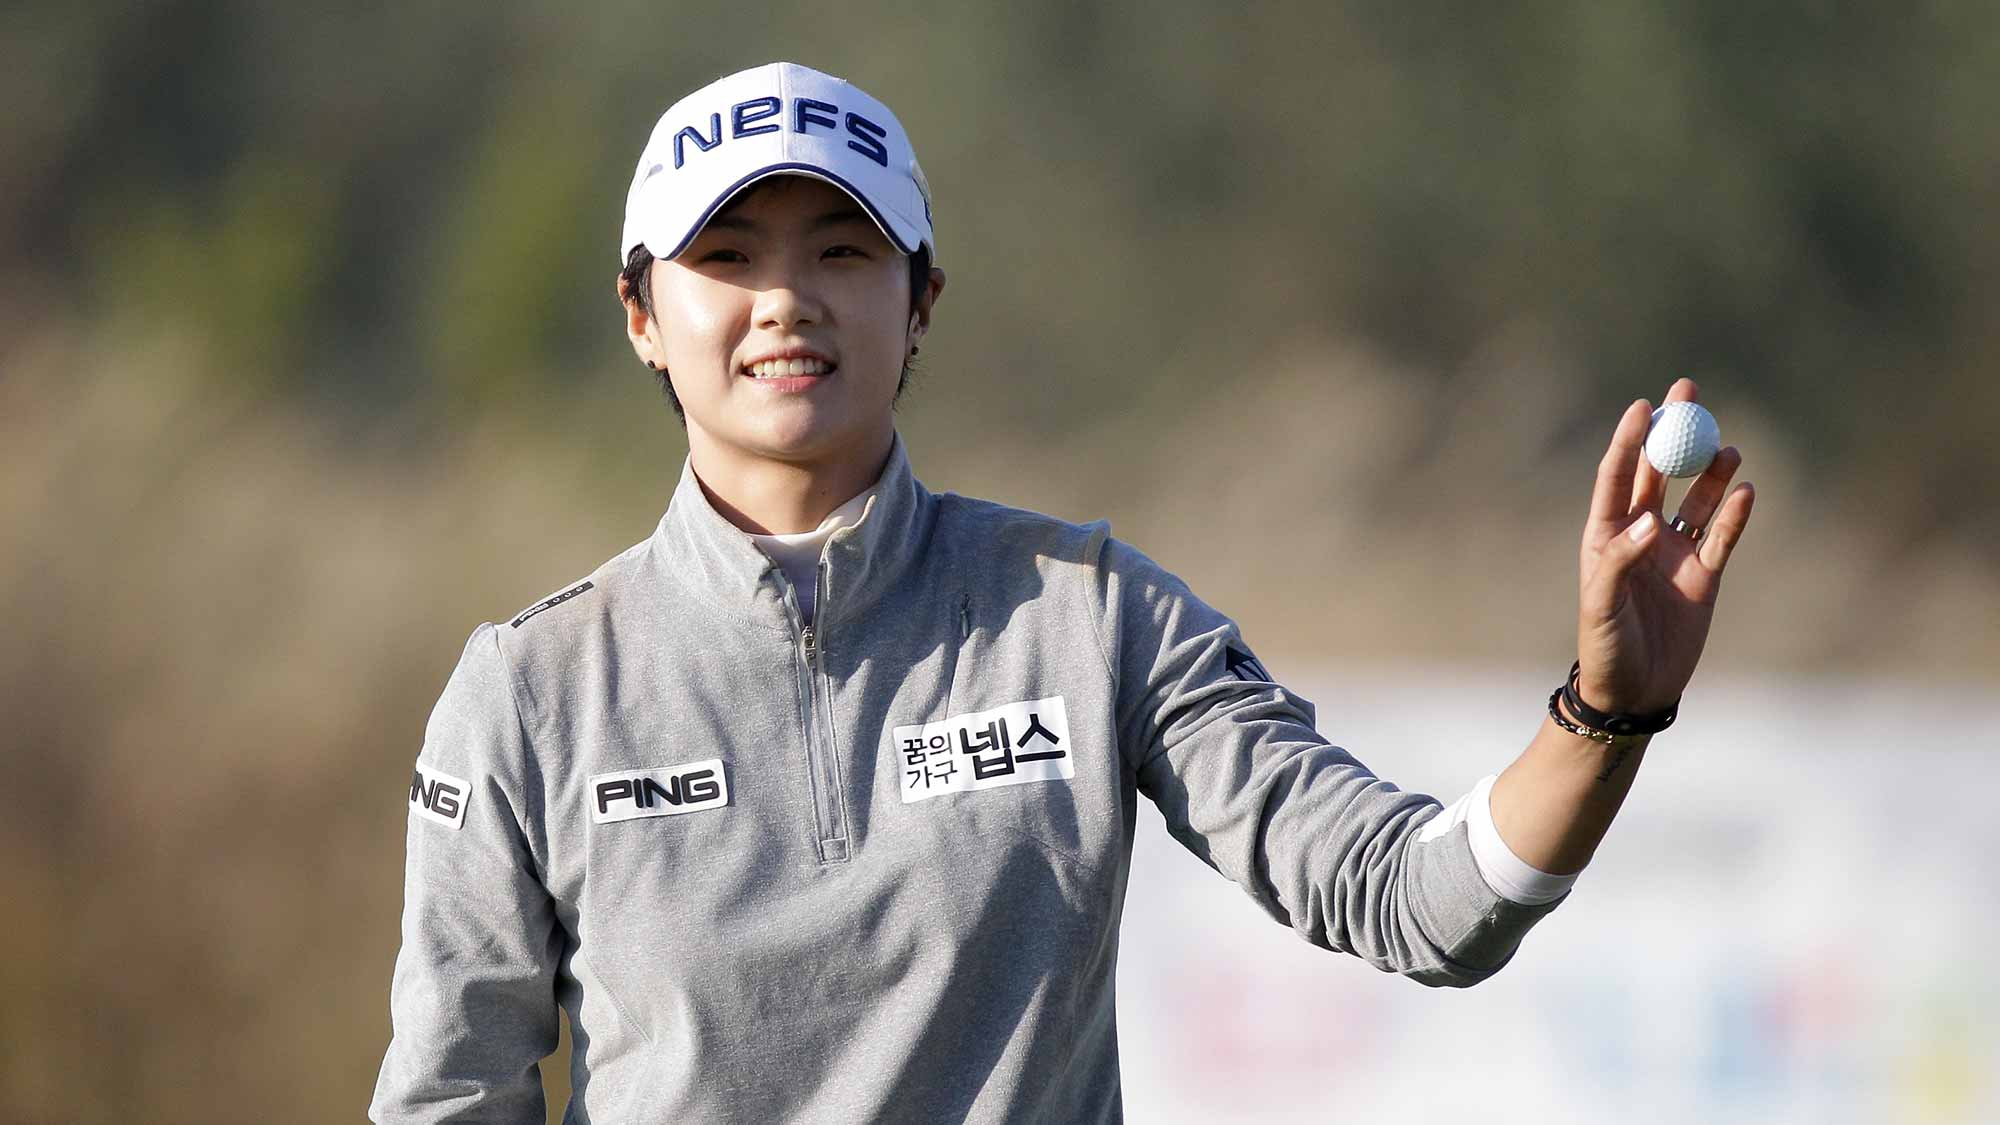 Sung Hyun Park of South Korea reacts after a putt on the 18th hole during round three of the LPGA KEB Hana Bank